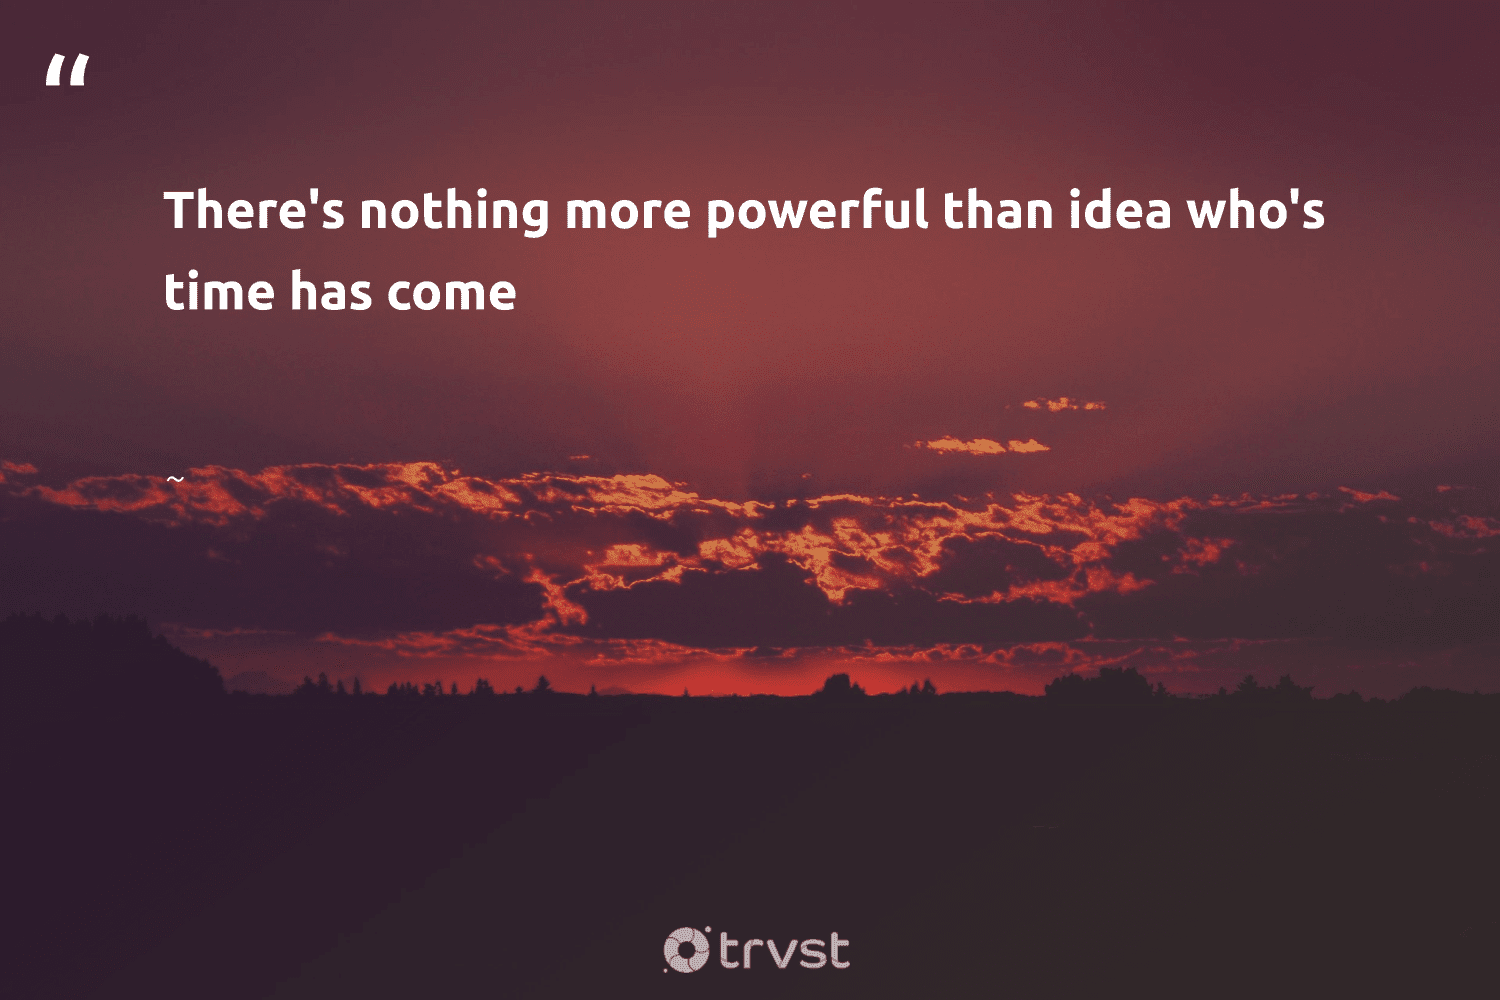 """""""There's nothing more powerful than idea who's time has come""""  -  #trvst #quotes #nevergiveup #socialchange #begreat #bethechange #togetherwecan #socialimpact #mindset #collectiveaction #health #gogreen"""